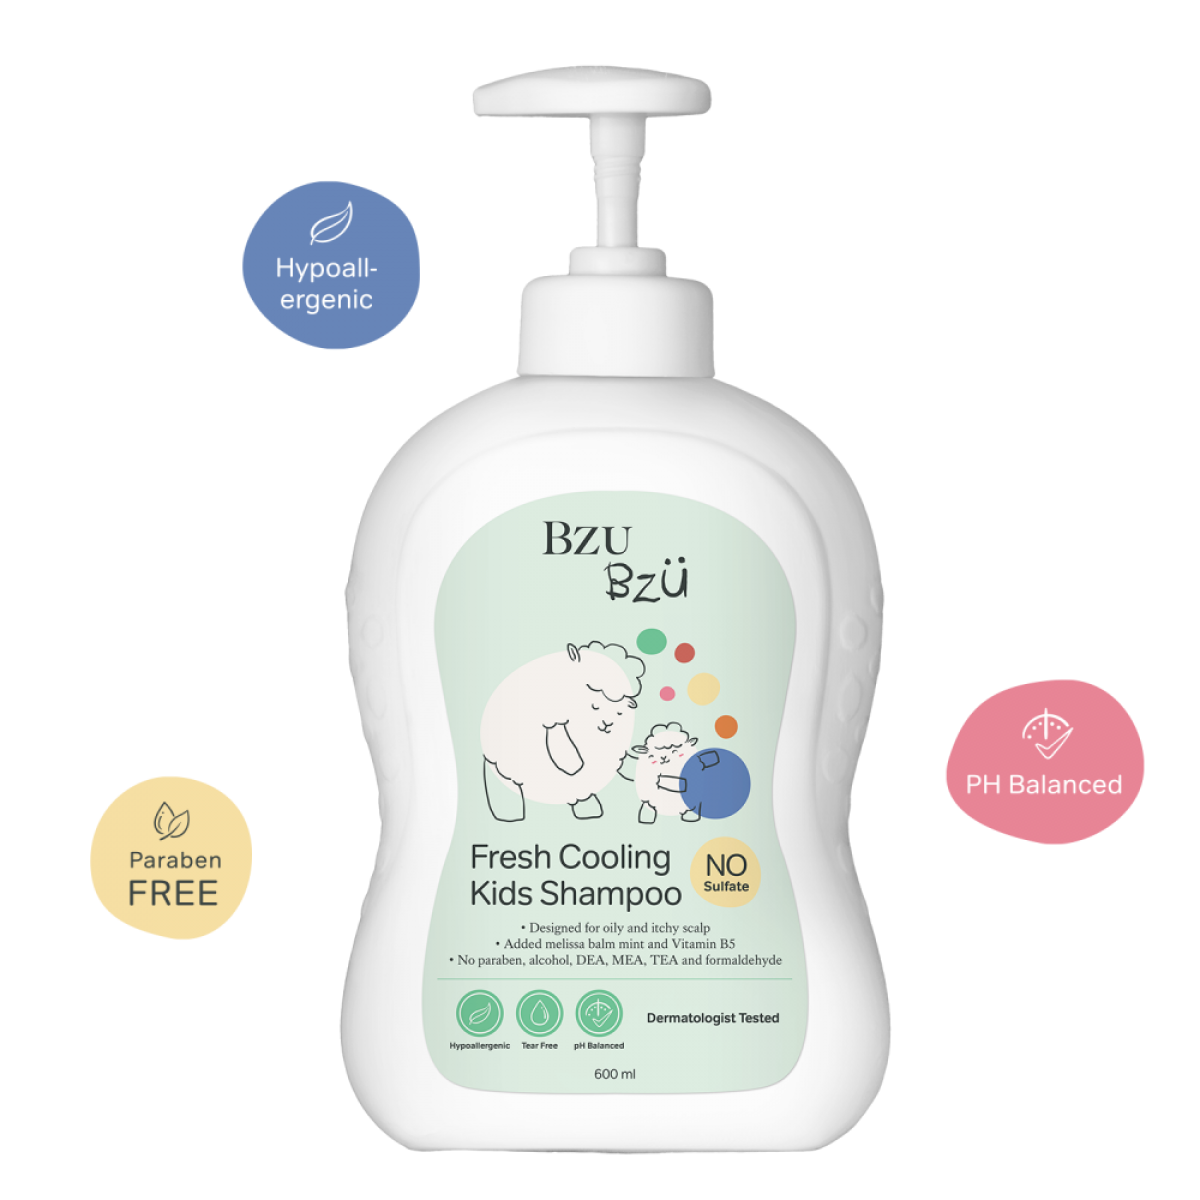 BZU BZU Fresh Cooling Kids Shampoo 600ml - Product of Singapore Made in Malaysia